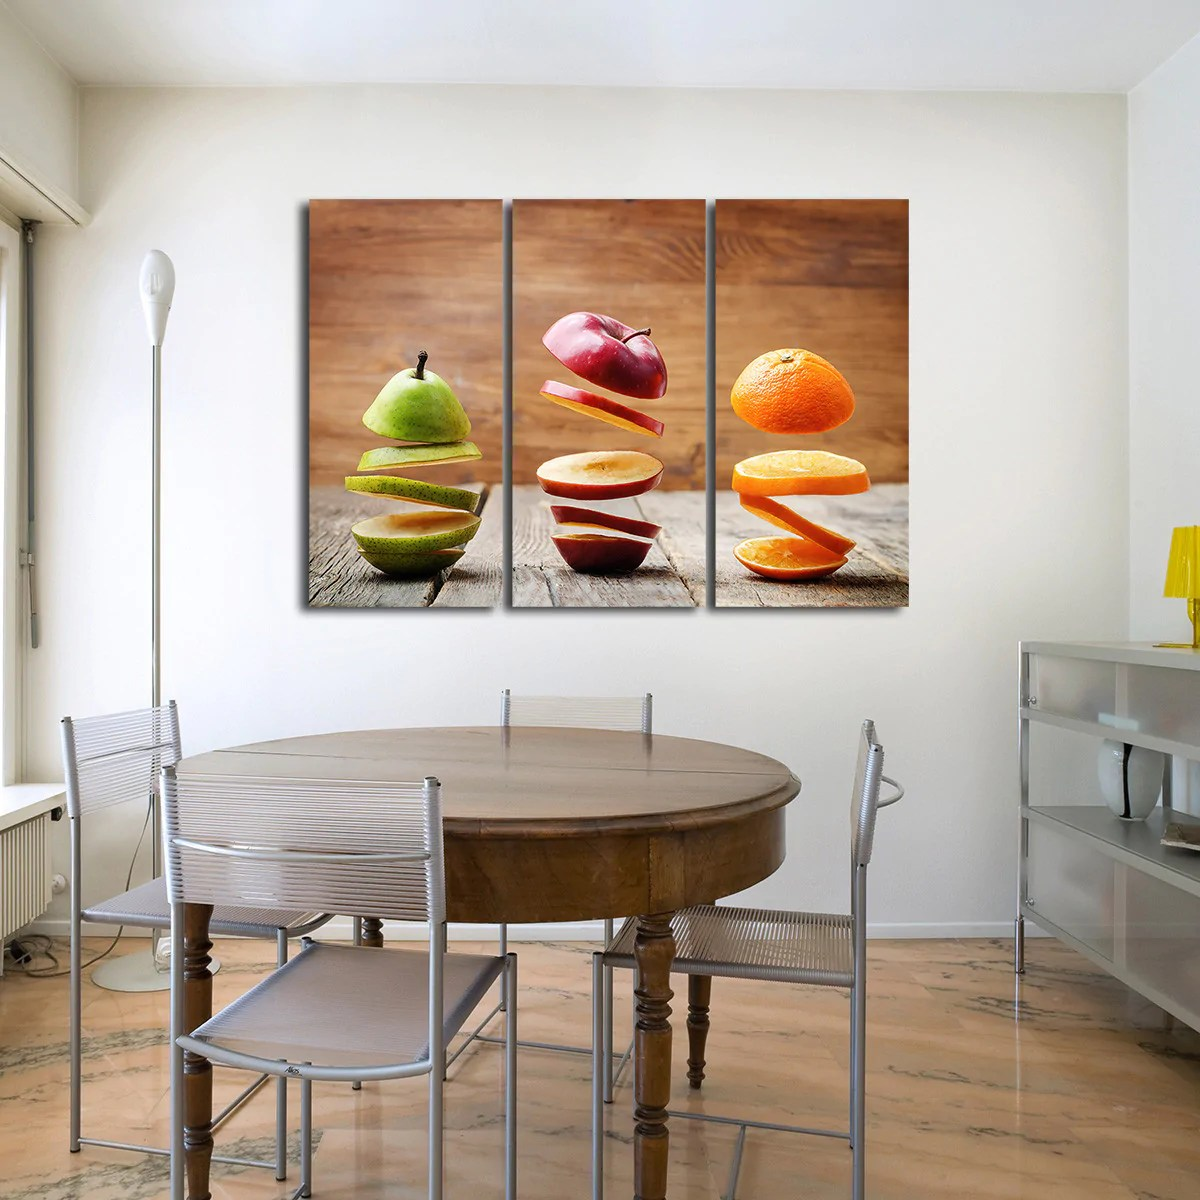 Comfortable Slices Fruit Multi Panel Canvas Wall Art Dr2 Canvas On Demand Canada Reviews Canvas On Demand Reviews Yelp dpreview Canvas On Demand Reviews